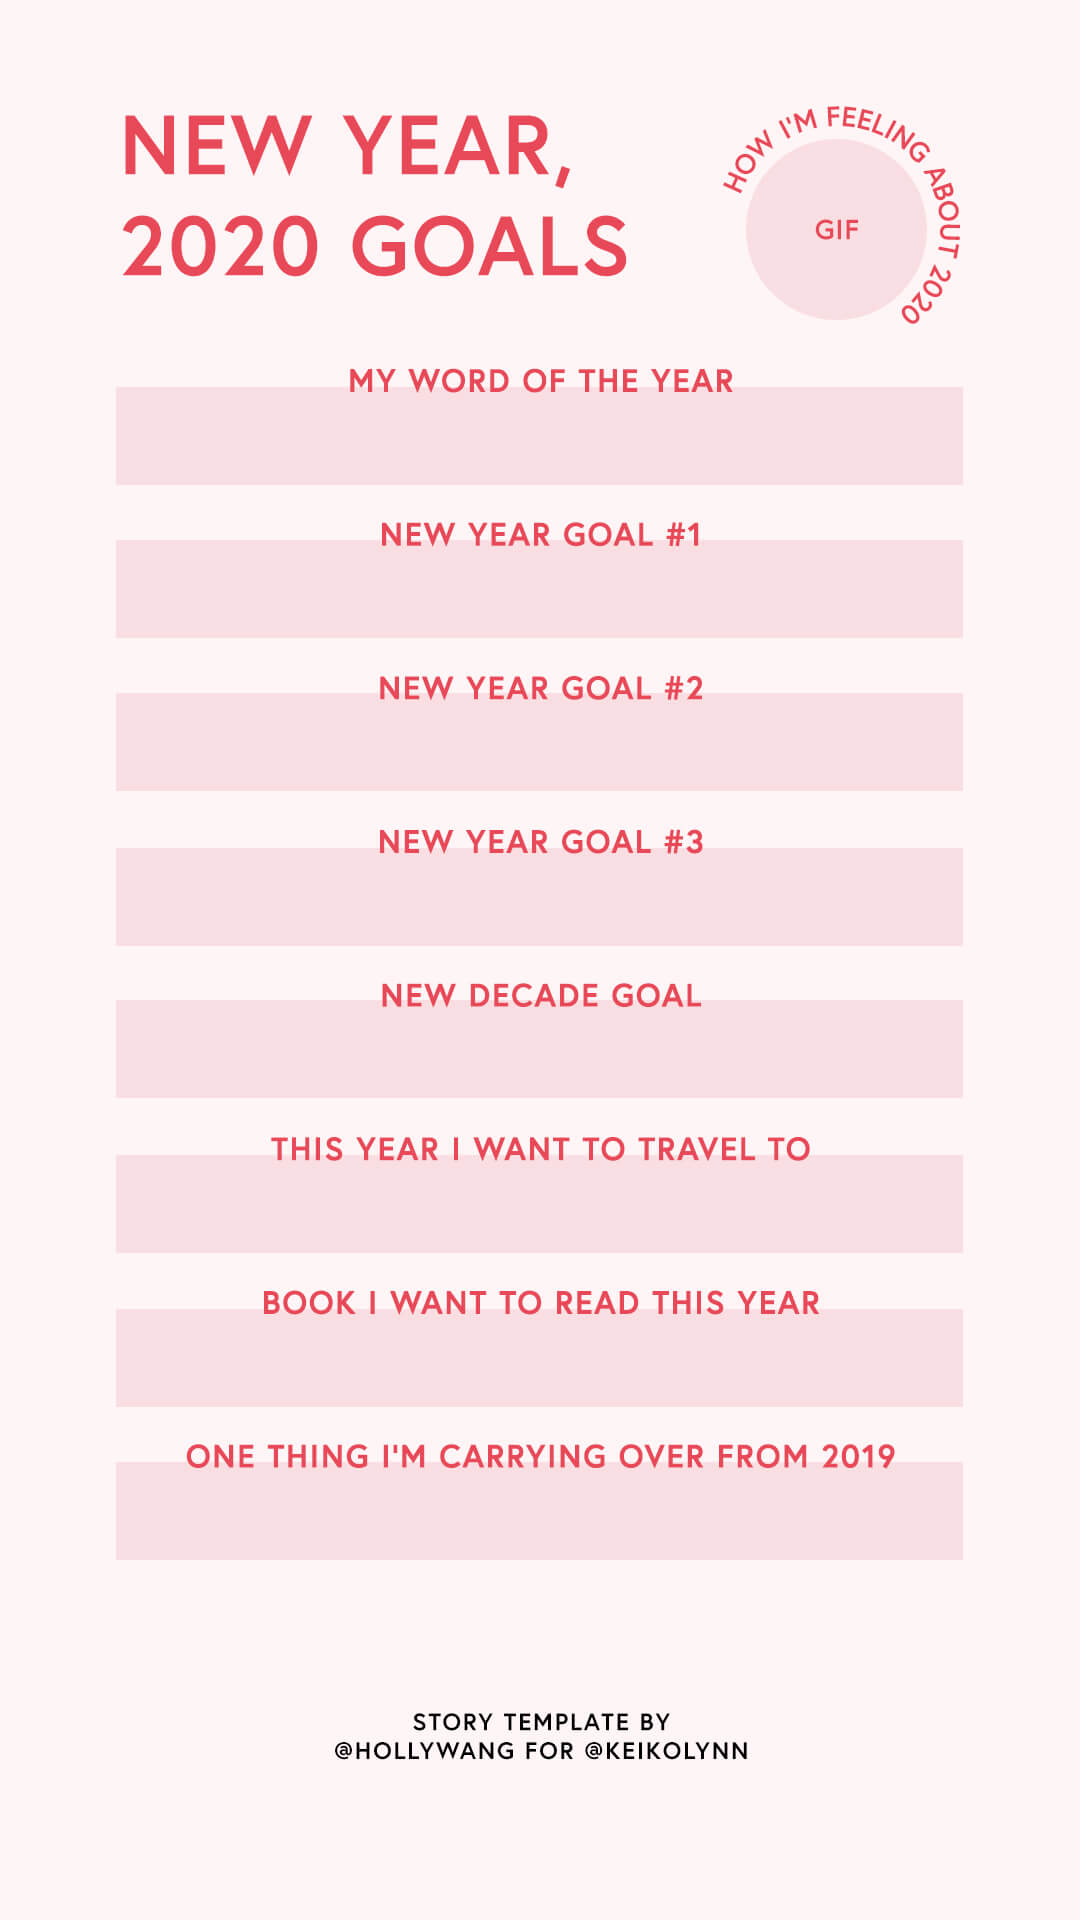 instagram story templates new year goals 2020